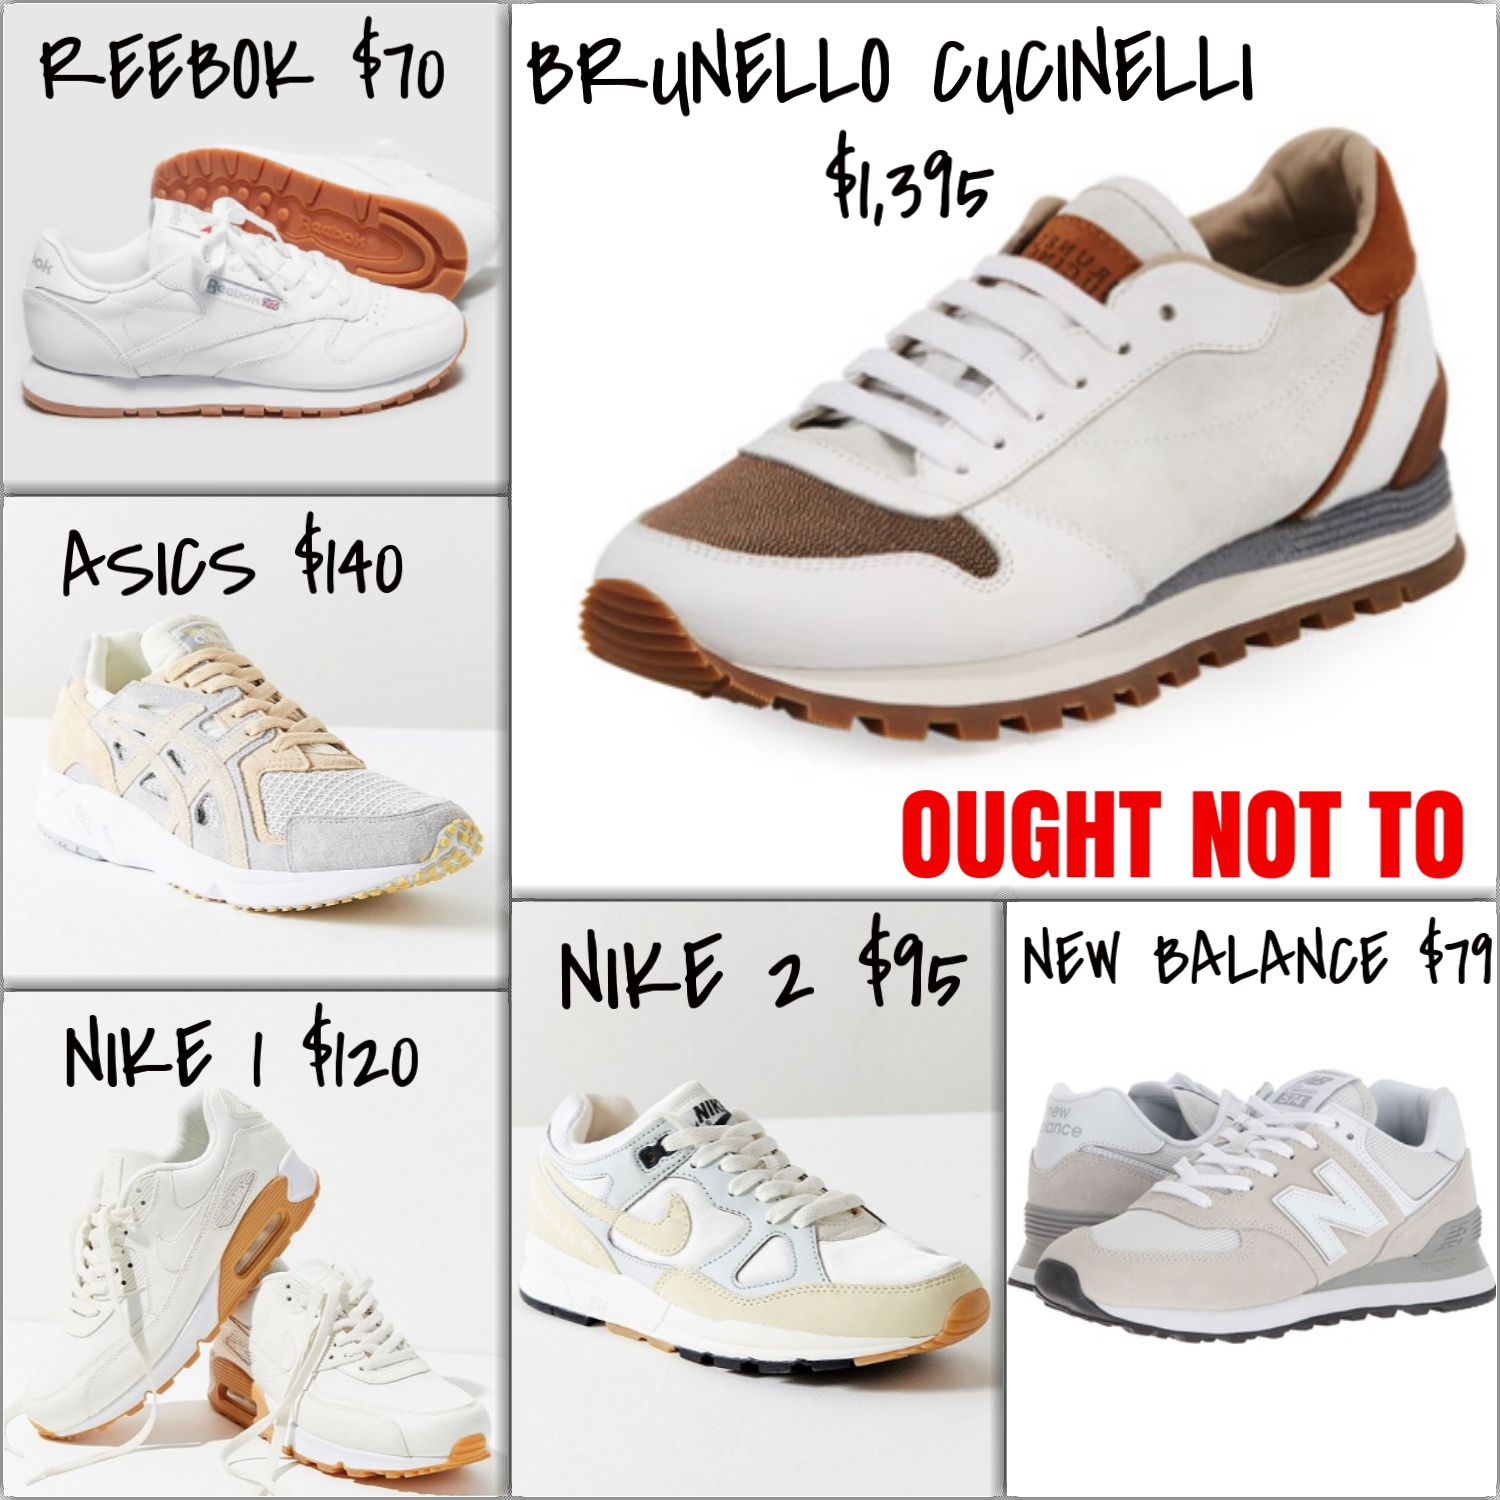 Ought Not To, Ought To: Sneakers Edition | TrufflesandTrends.com